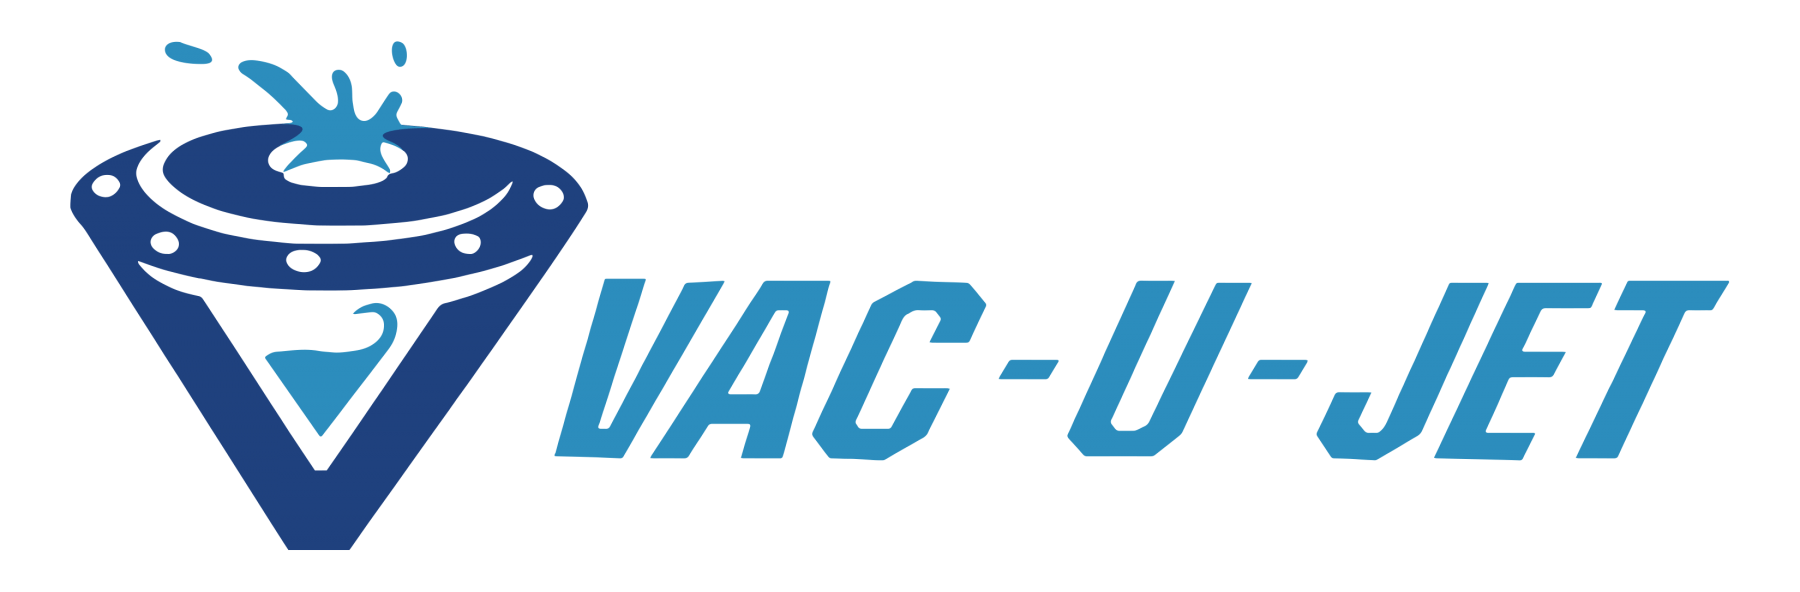 Vac-U-Jet | Hydrovac & Septic Services - Nashville TN & Williston ND